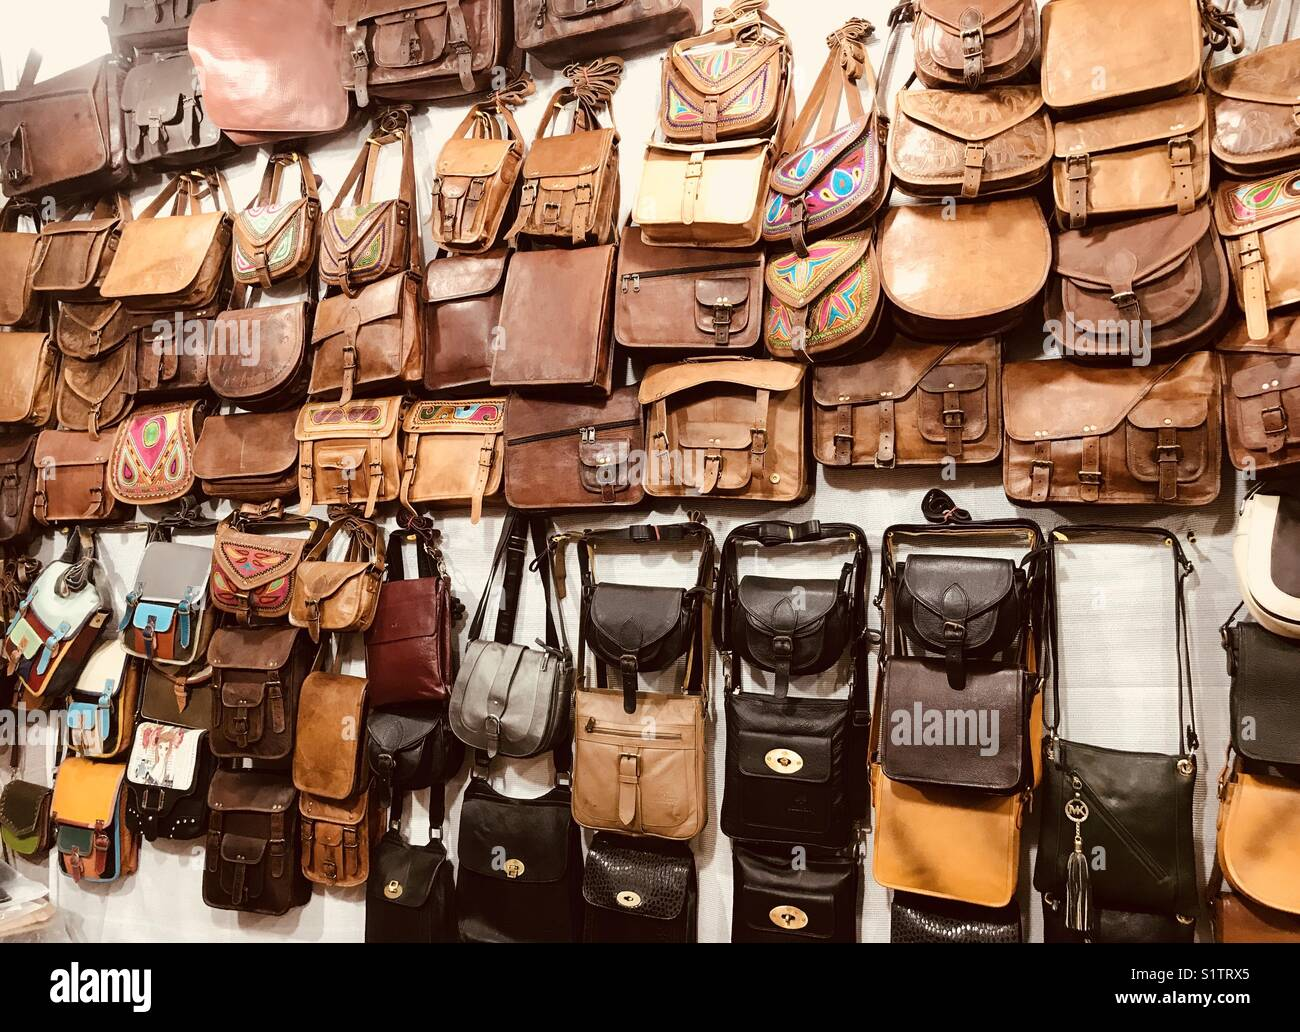 a7a5568e6dc35 Leather Bags Stock Photos & Leather Bags Stock Images - Alamy